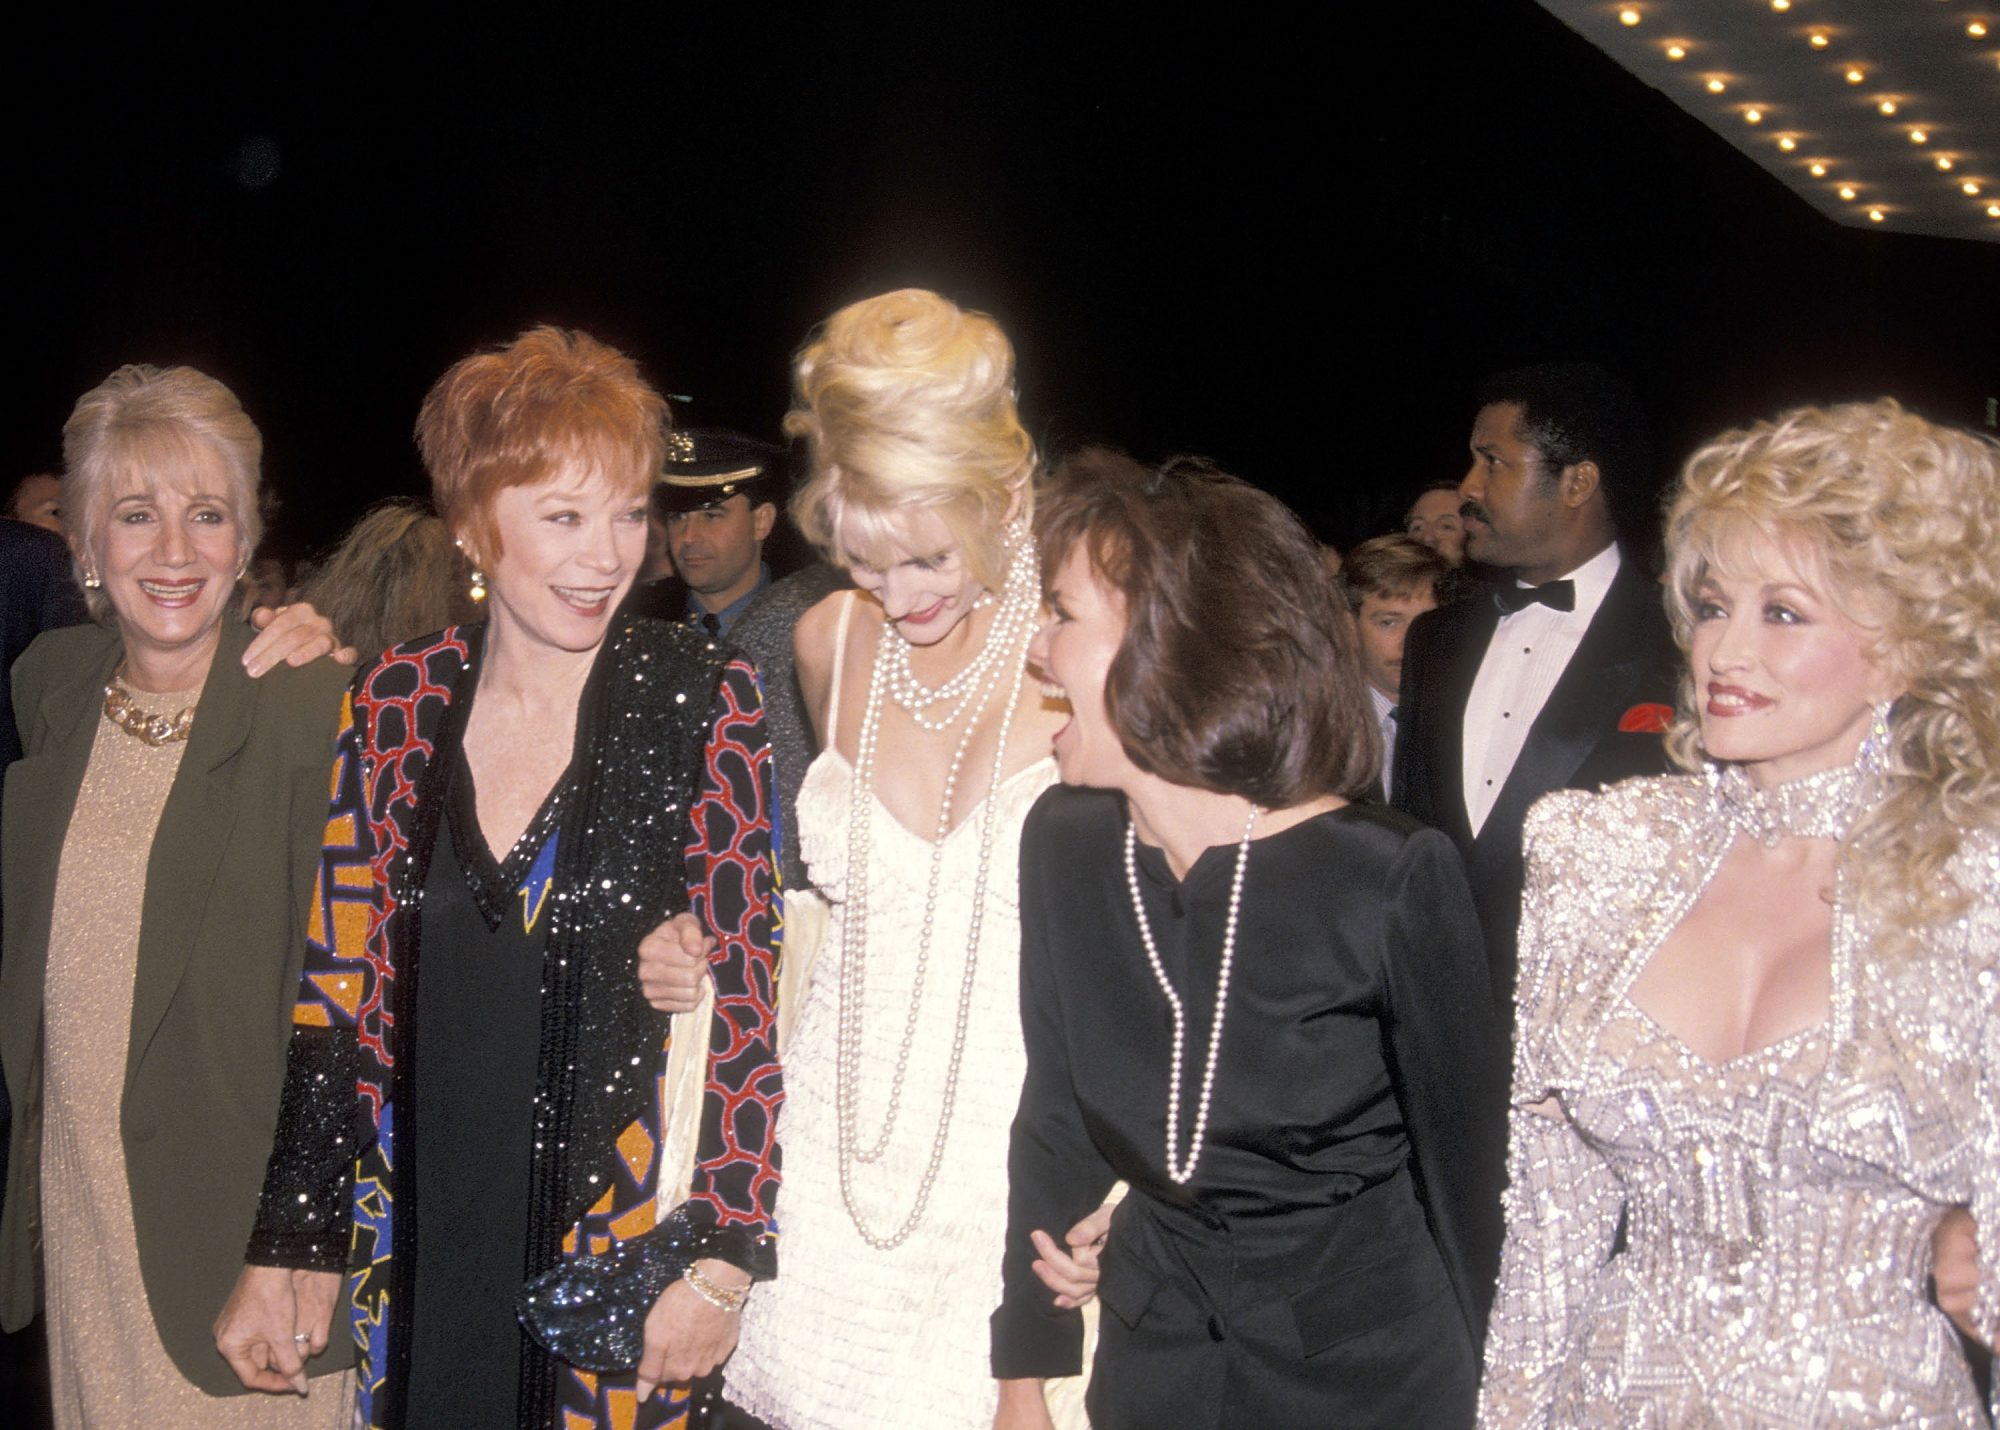 Olympia Dukakis, Shirley MacLaine, Daryl Hannah, Sally Field and Dolly Parton at Steel Magnolias Movie Premiere